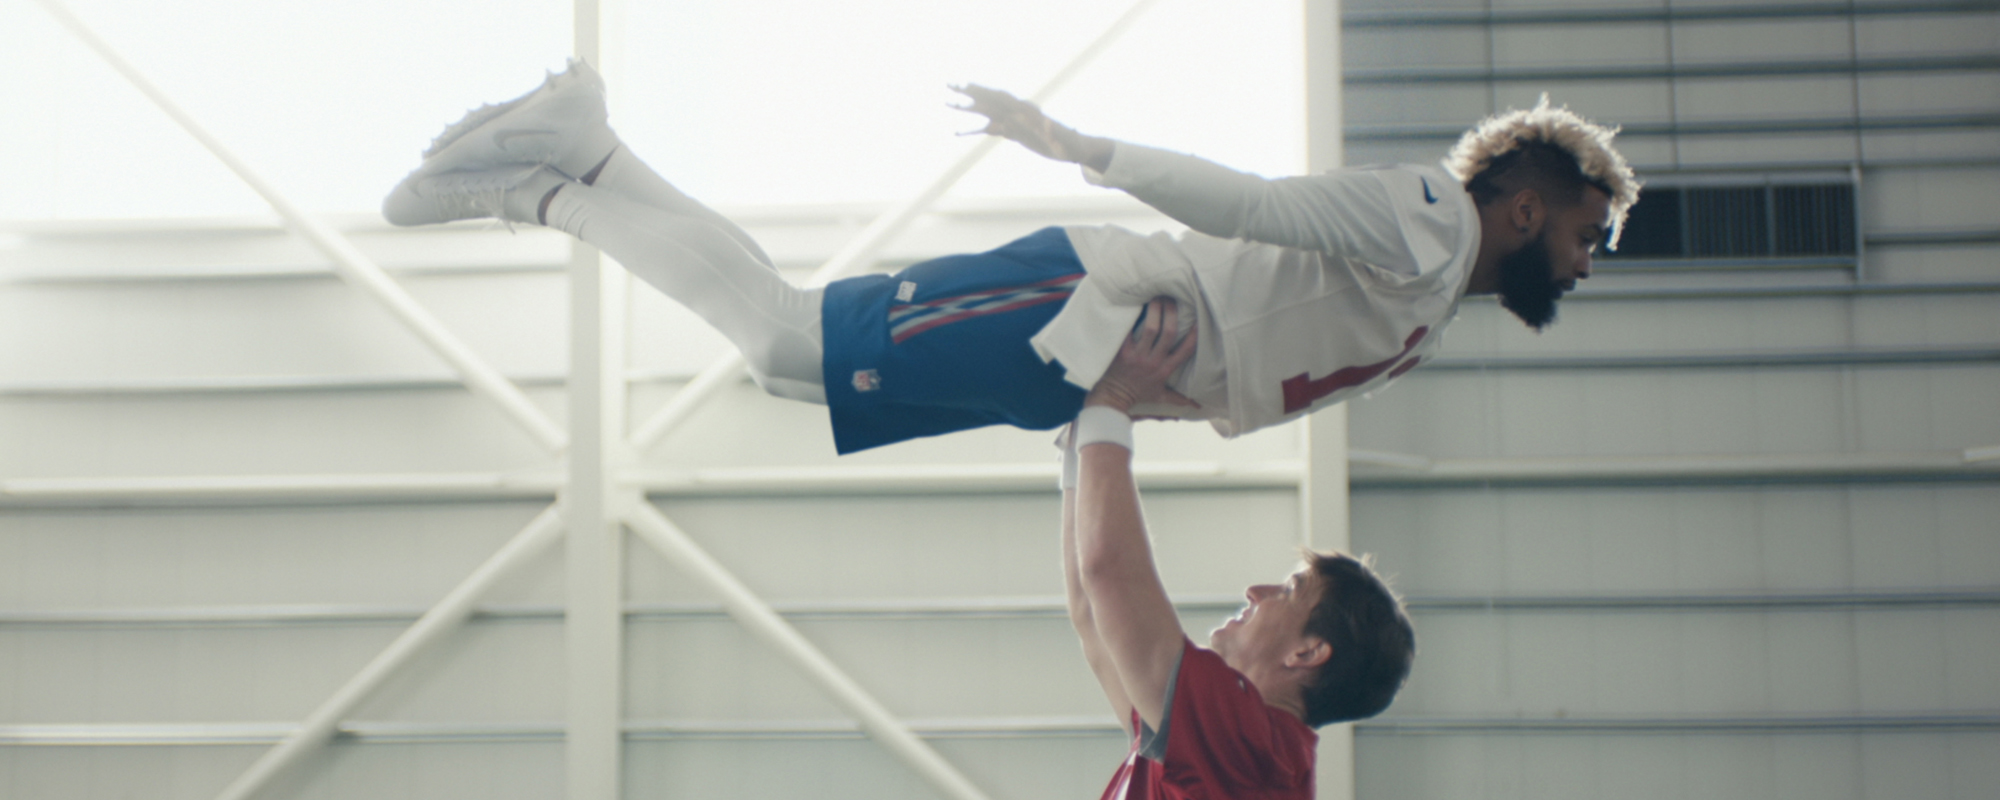 3 things we learned from this year's Super Bowl adverts